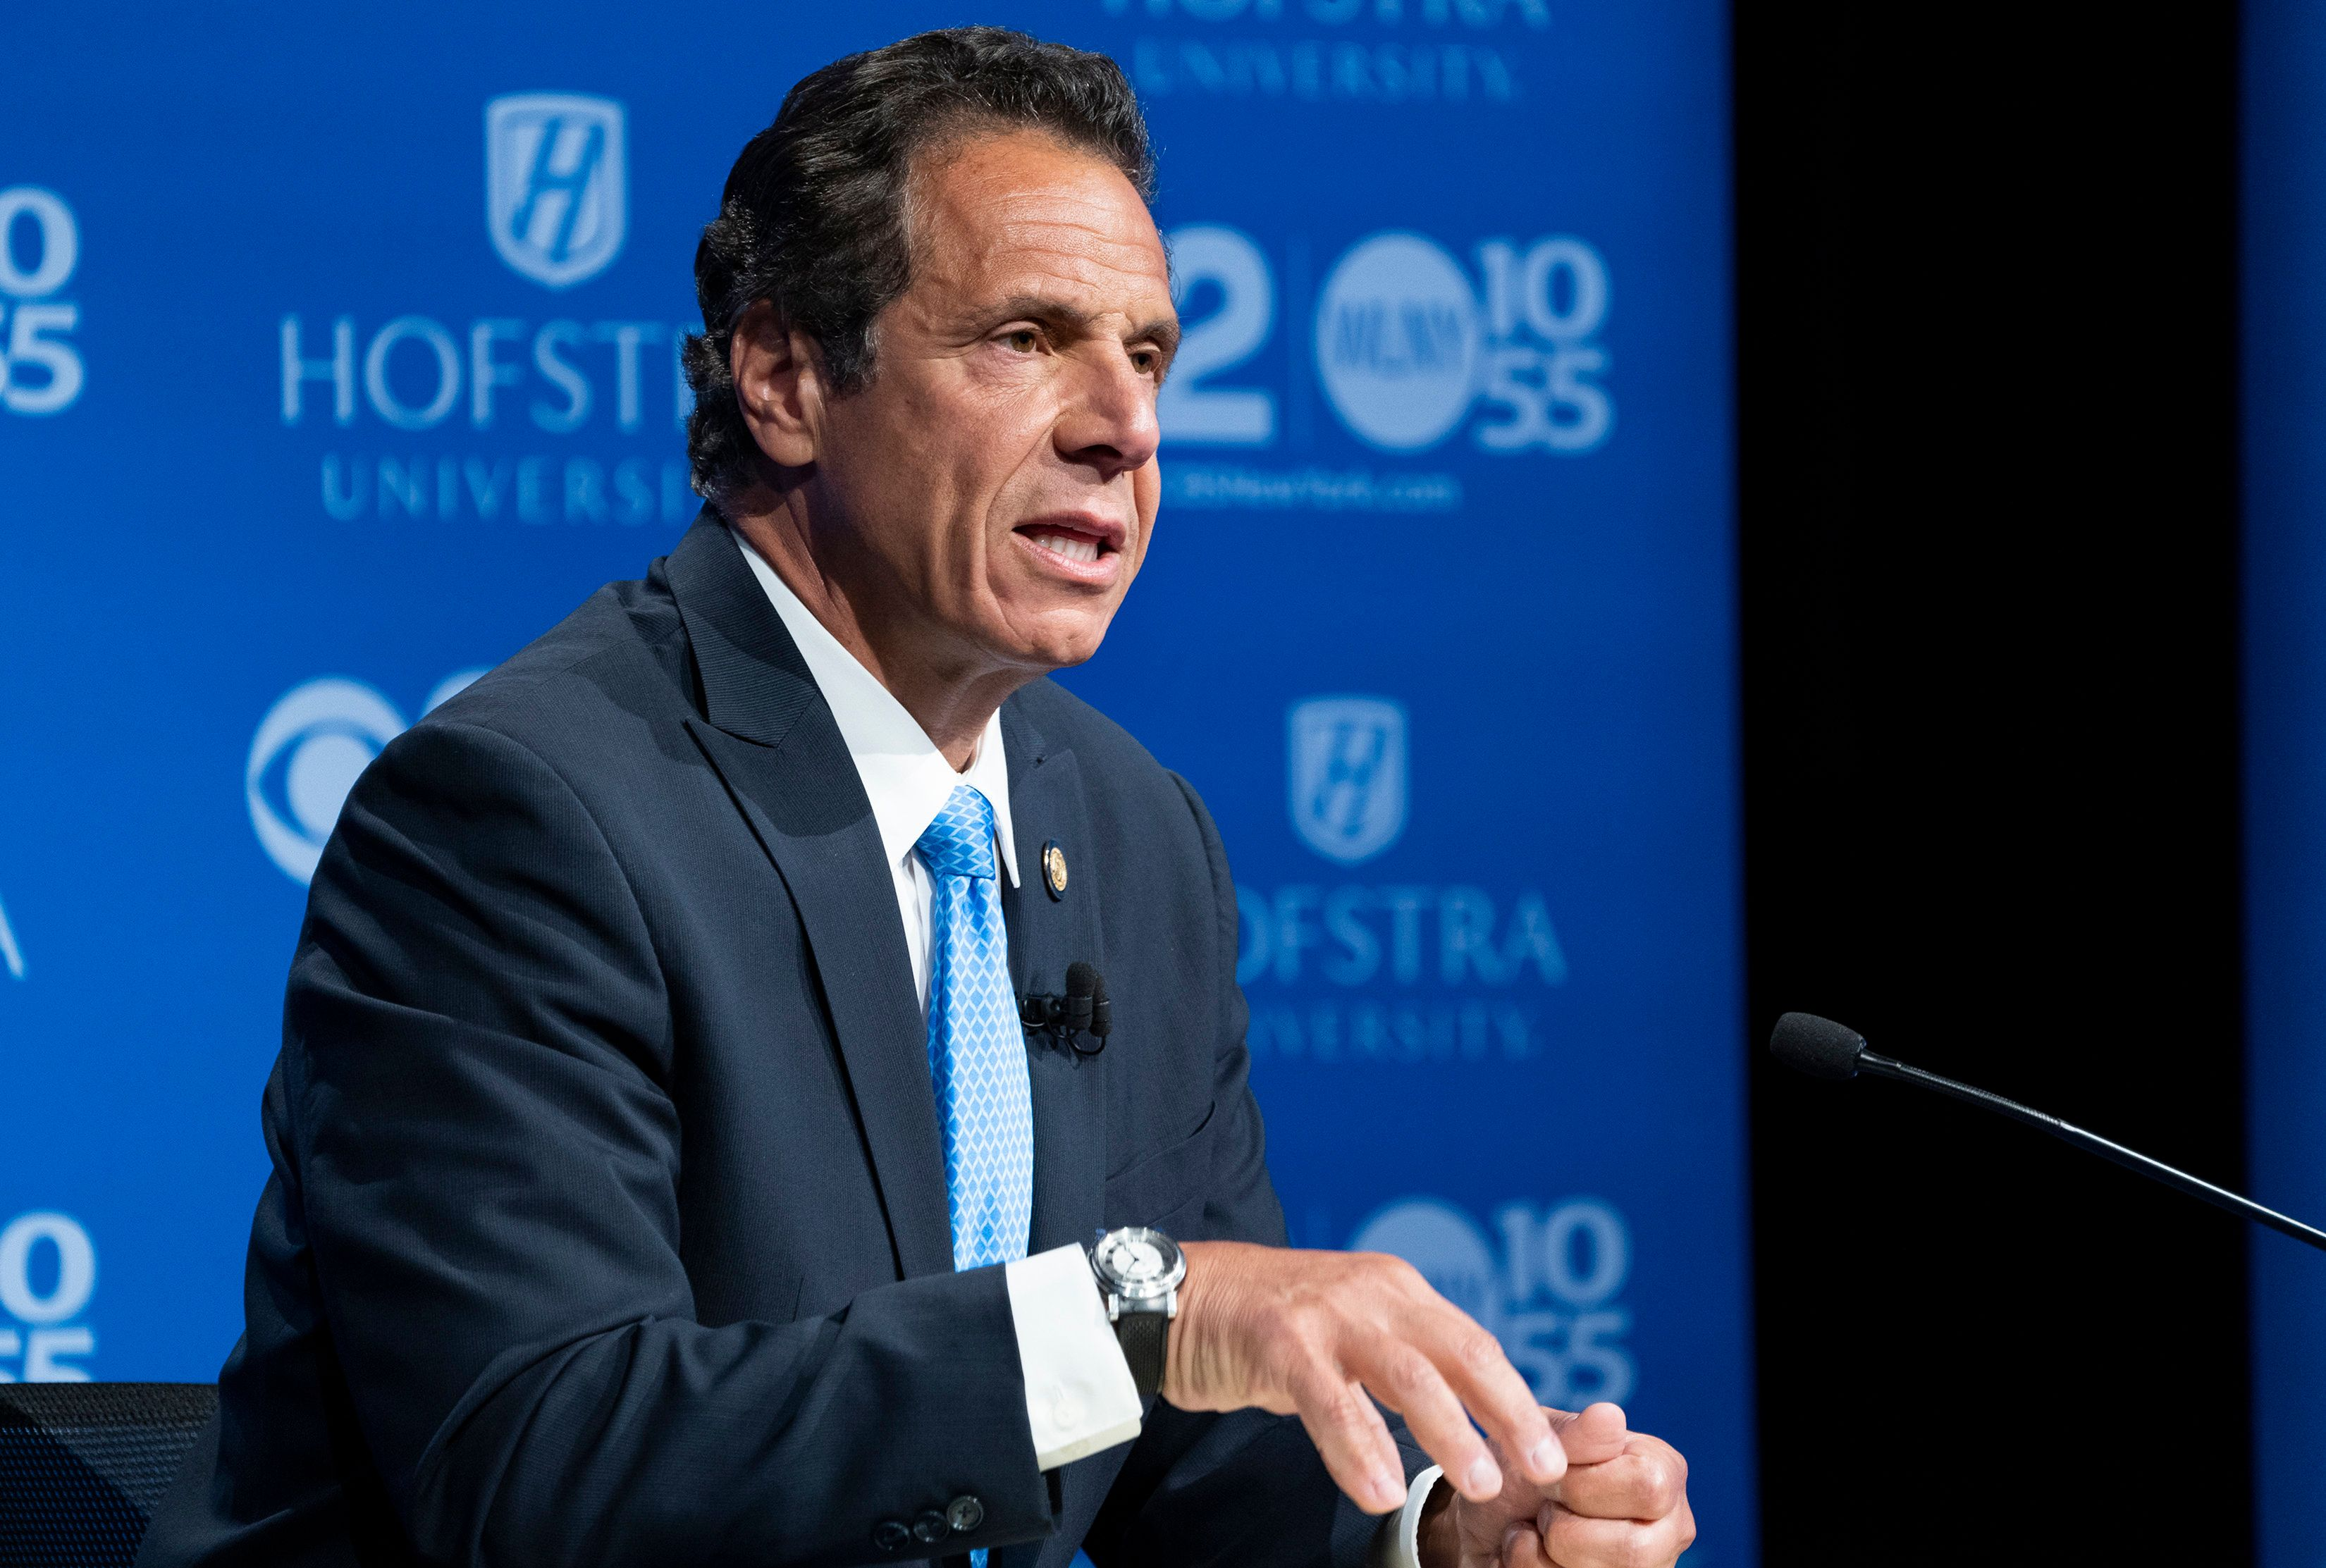 HEMPSTEAD, NY - AUGUST 29: New York Gov. Andrew Cuomo answers a question during a debate with primary opponent Cynthia Nixon at Hofstra University August 29, 2018 in Hempstead, New York. The debate is the only televised one between the two candidates before the primary on September 13.  (Photo by Craig Ruttle-Pool/Getty Images)